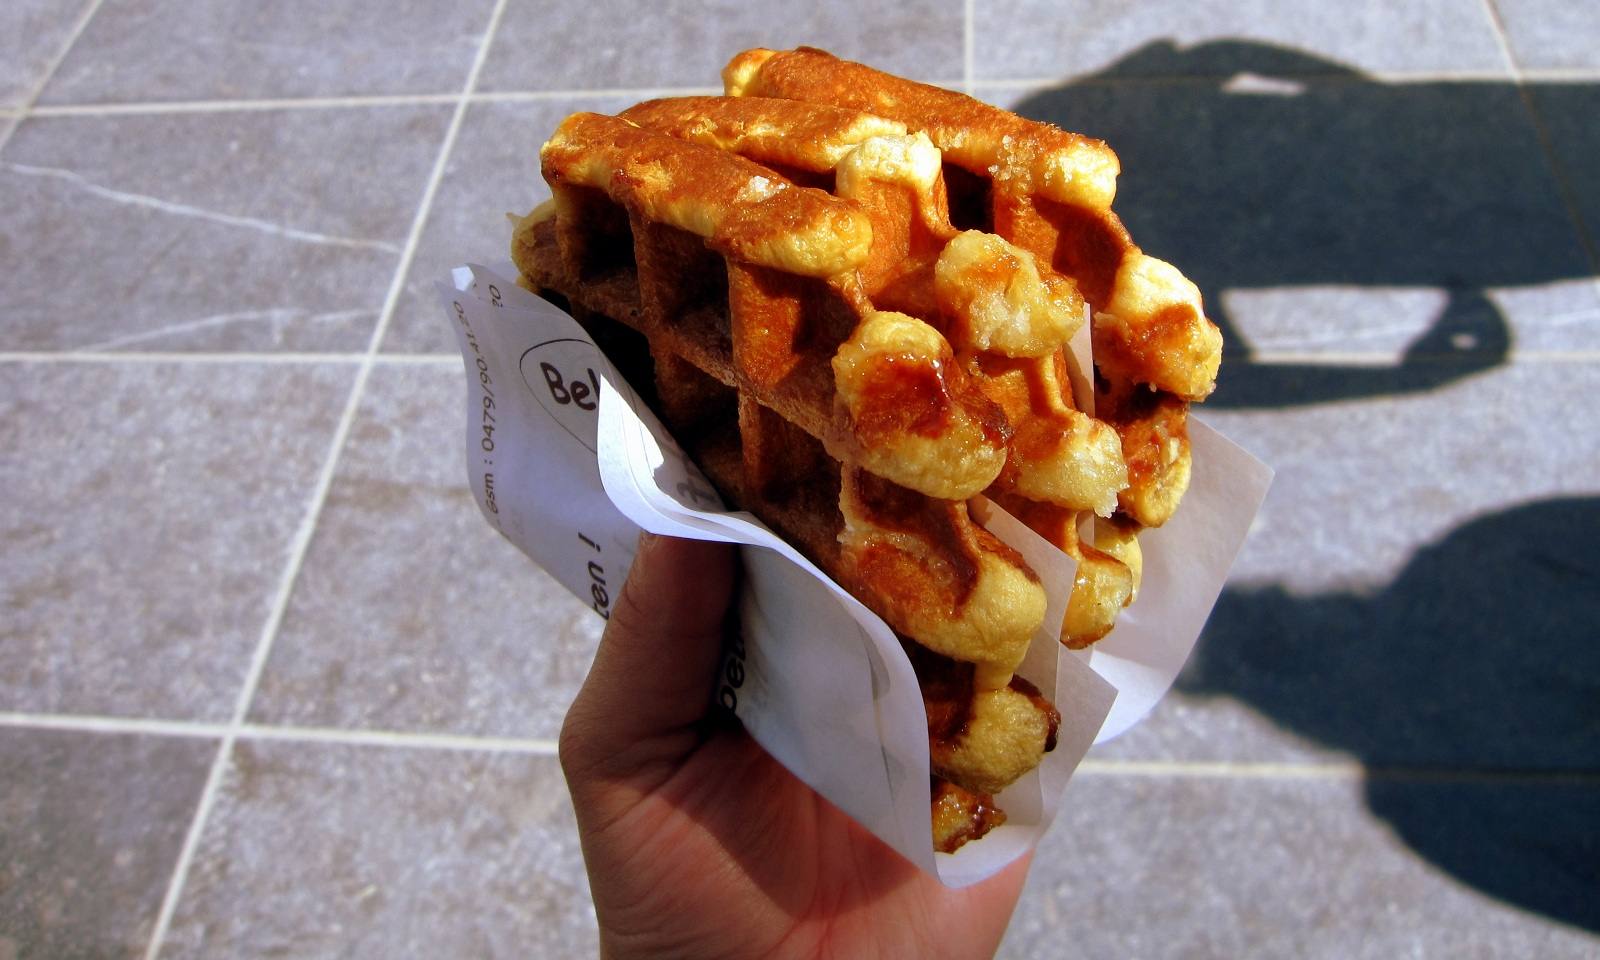 Sweetest Sights, Brussels, Belgium, Belgian Waffles with honey